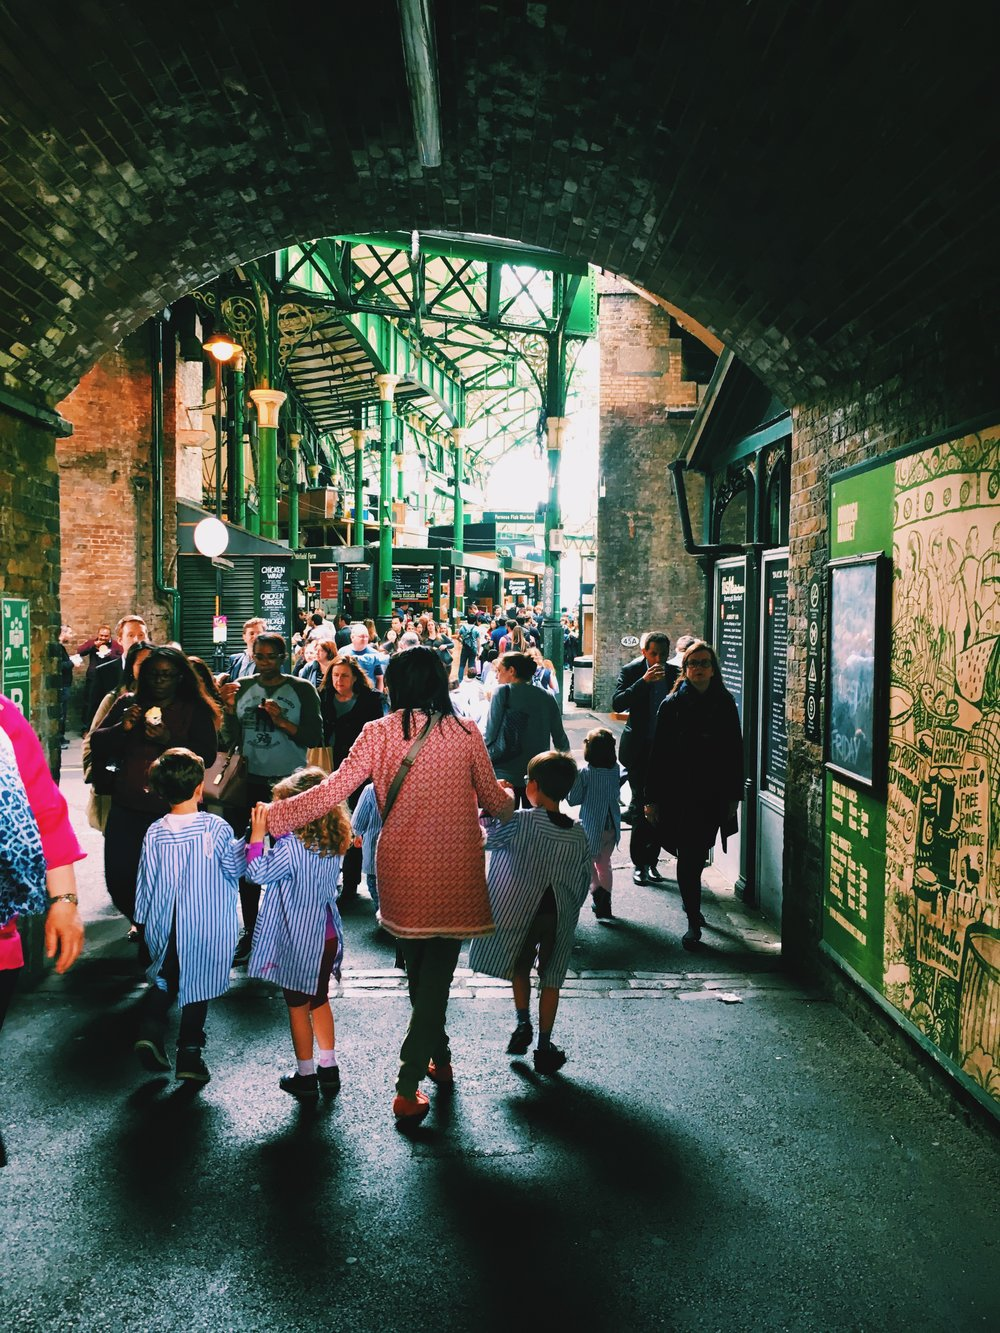 The hustle and bustle of Borough Market.